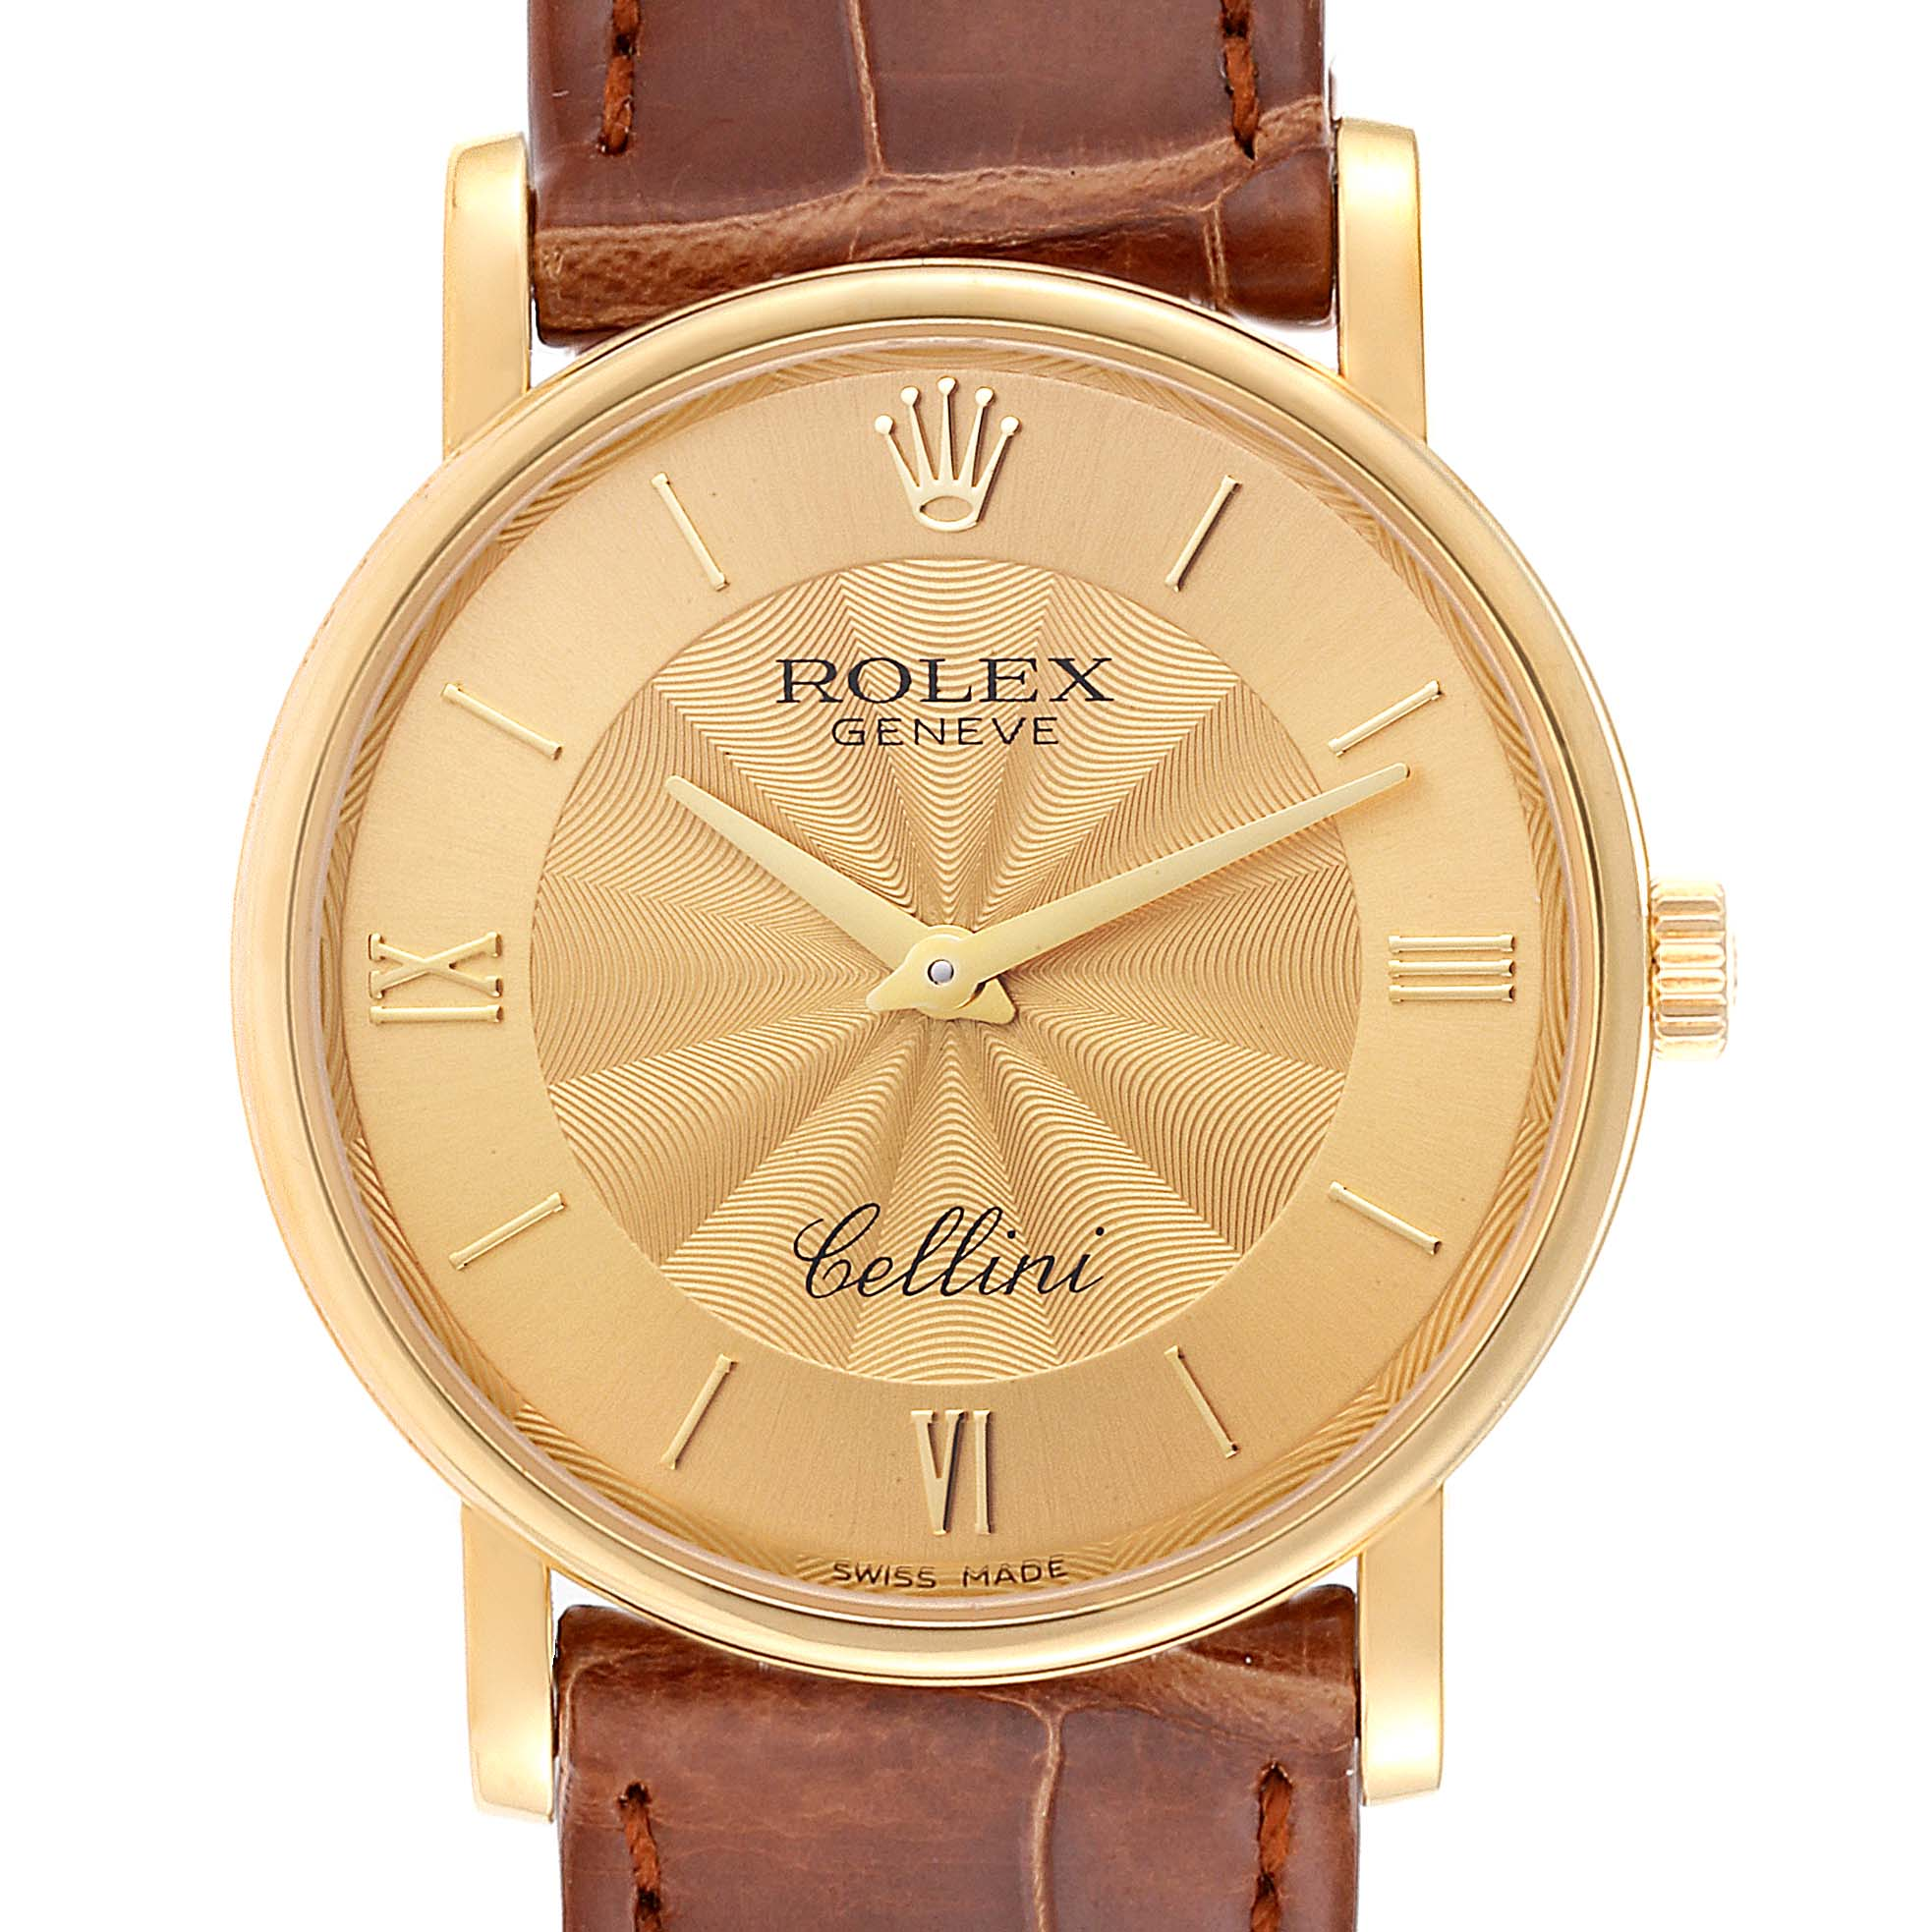 Photo of Rolex Cellini Classic 18K Yellow Gold Decorated Dial Watch 5115 Box Papers